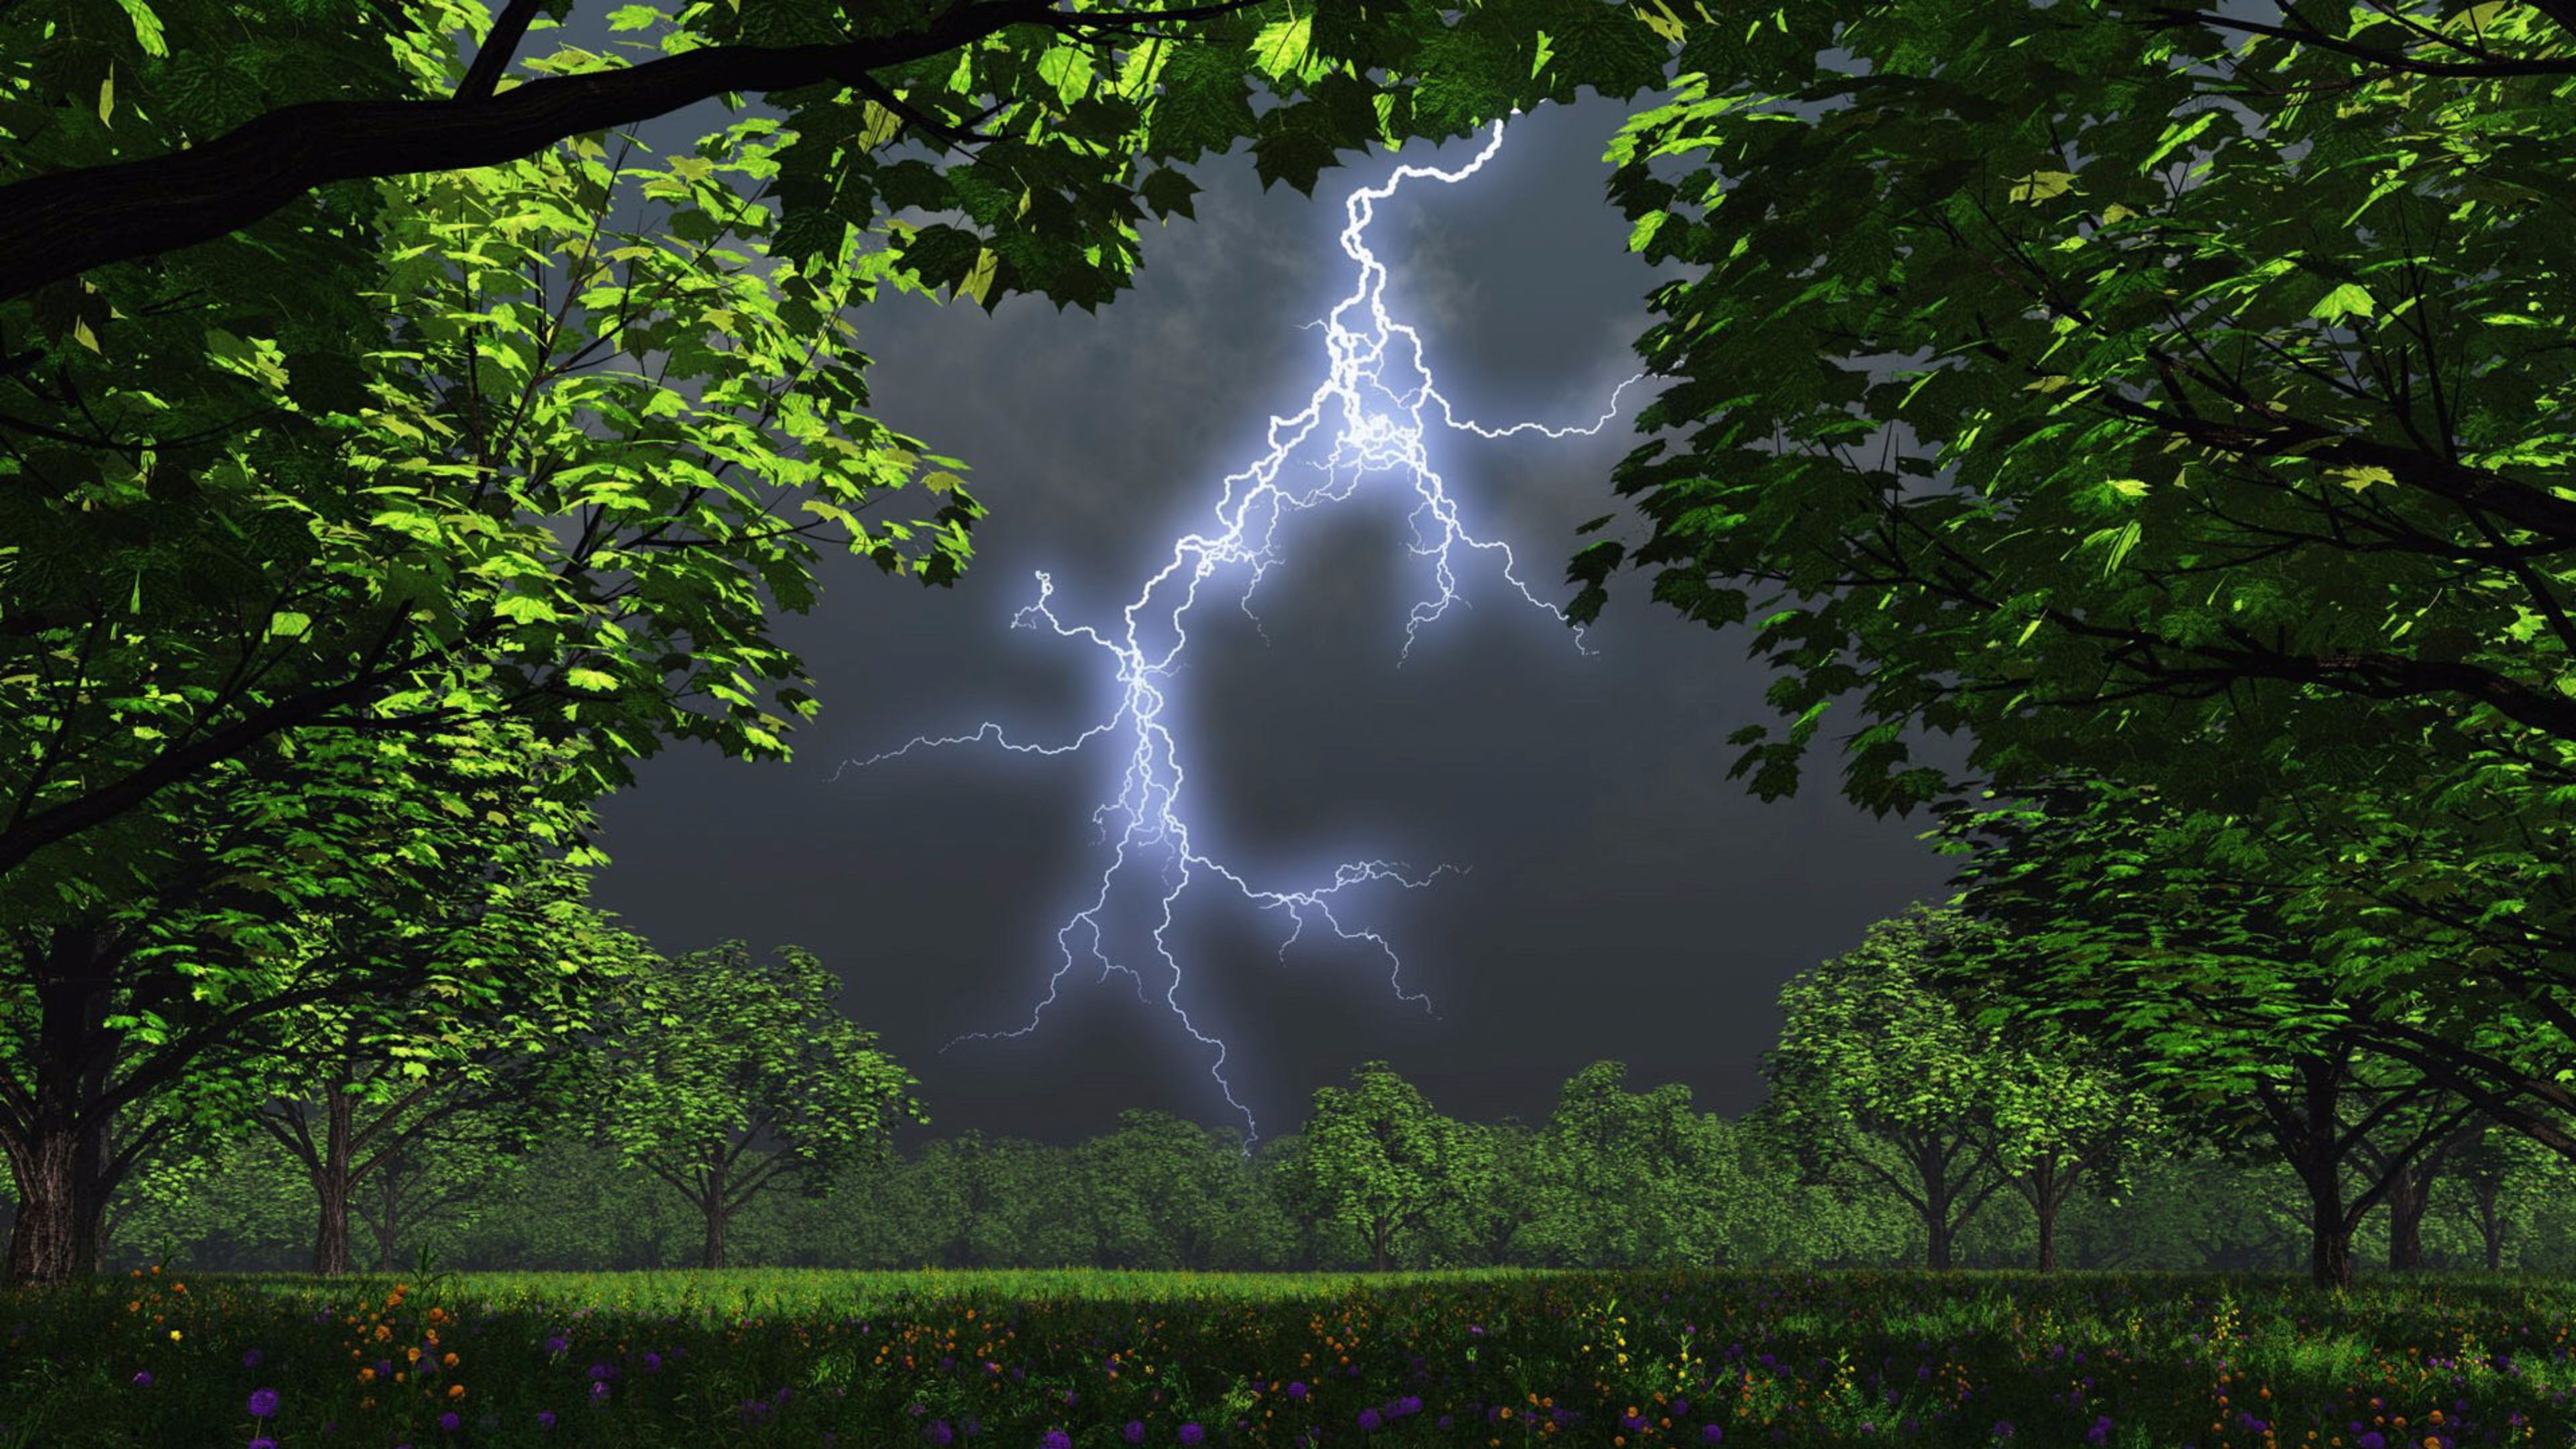 50 Storm Nature Wallpapers   Download at WallpaperBro 3840x2160